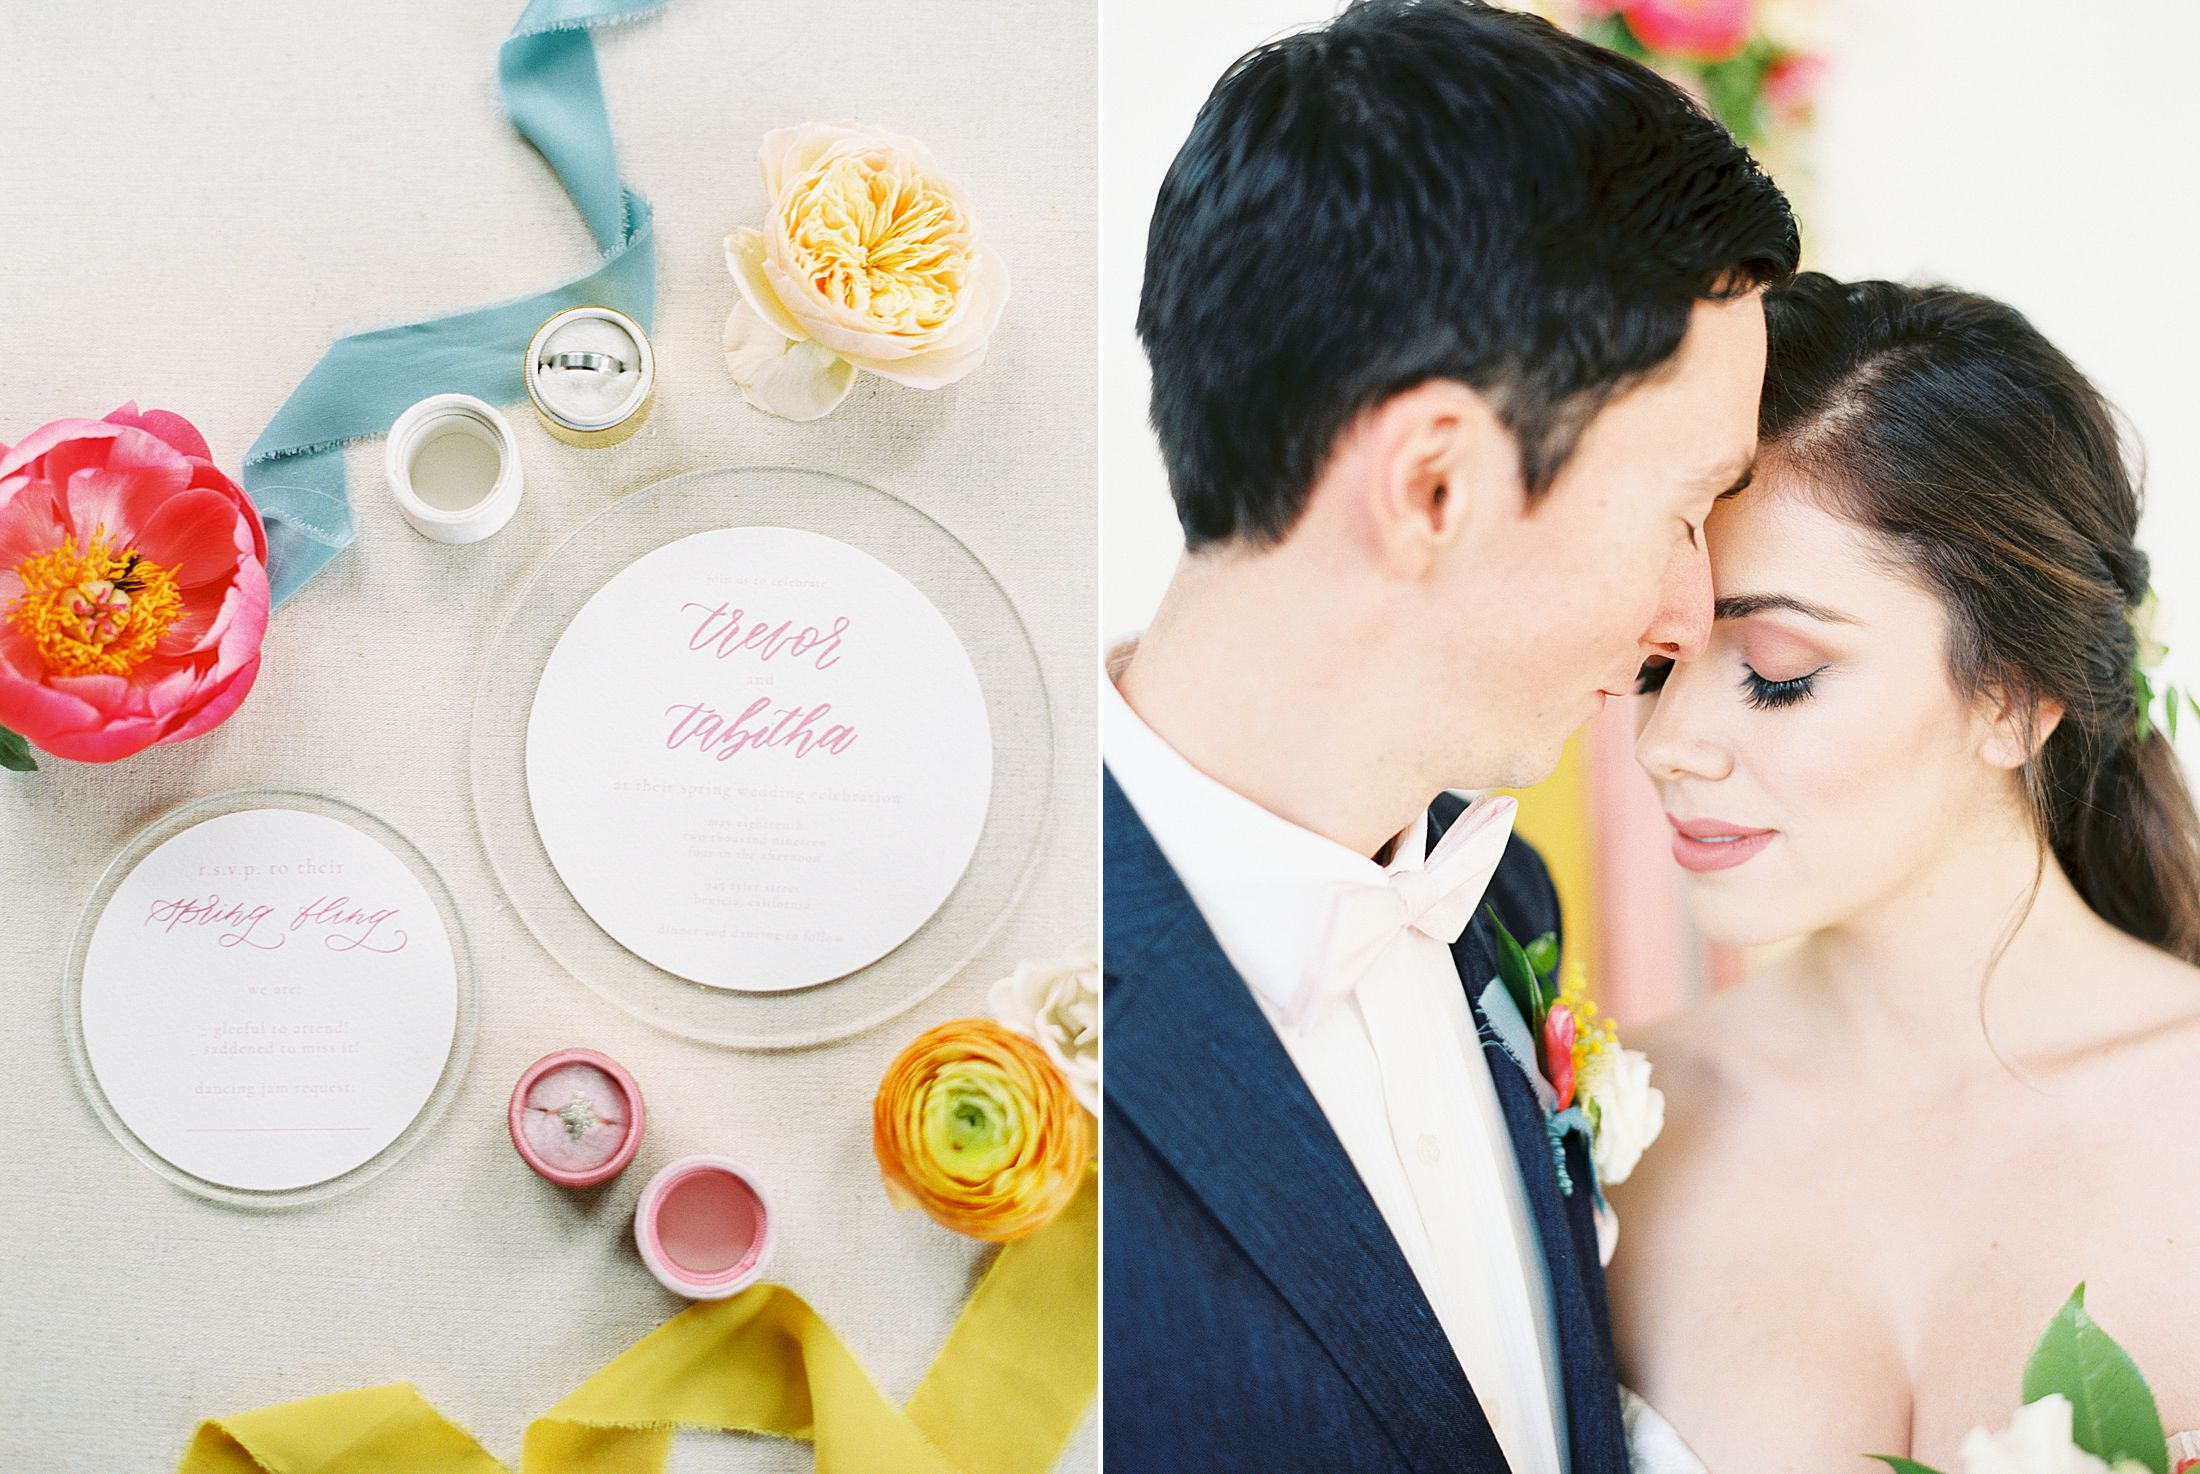 Bay Area Spring Wedding Inspiration - Ashley Baumgartner - Inspired By This - Party Crush Studio and Lens of Lenox Videography - Bay Area Wedding Photography_0057.jpg